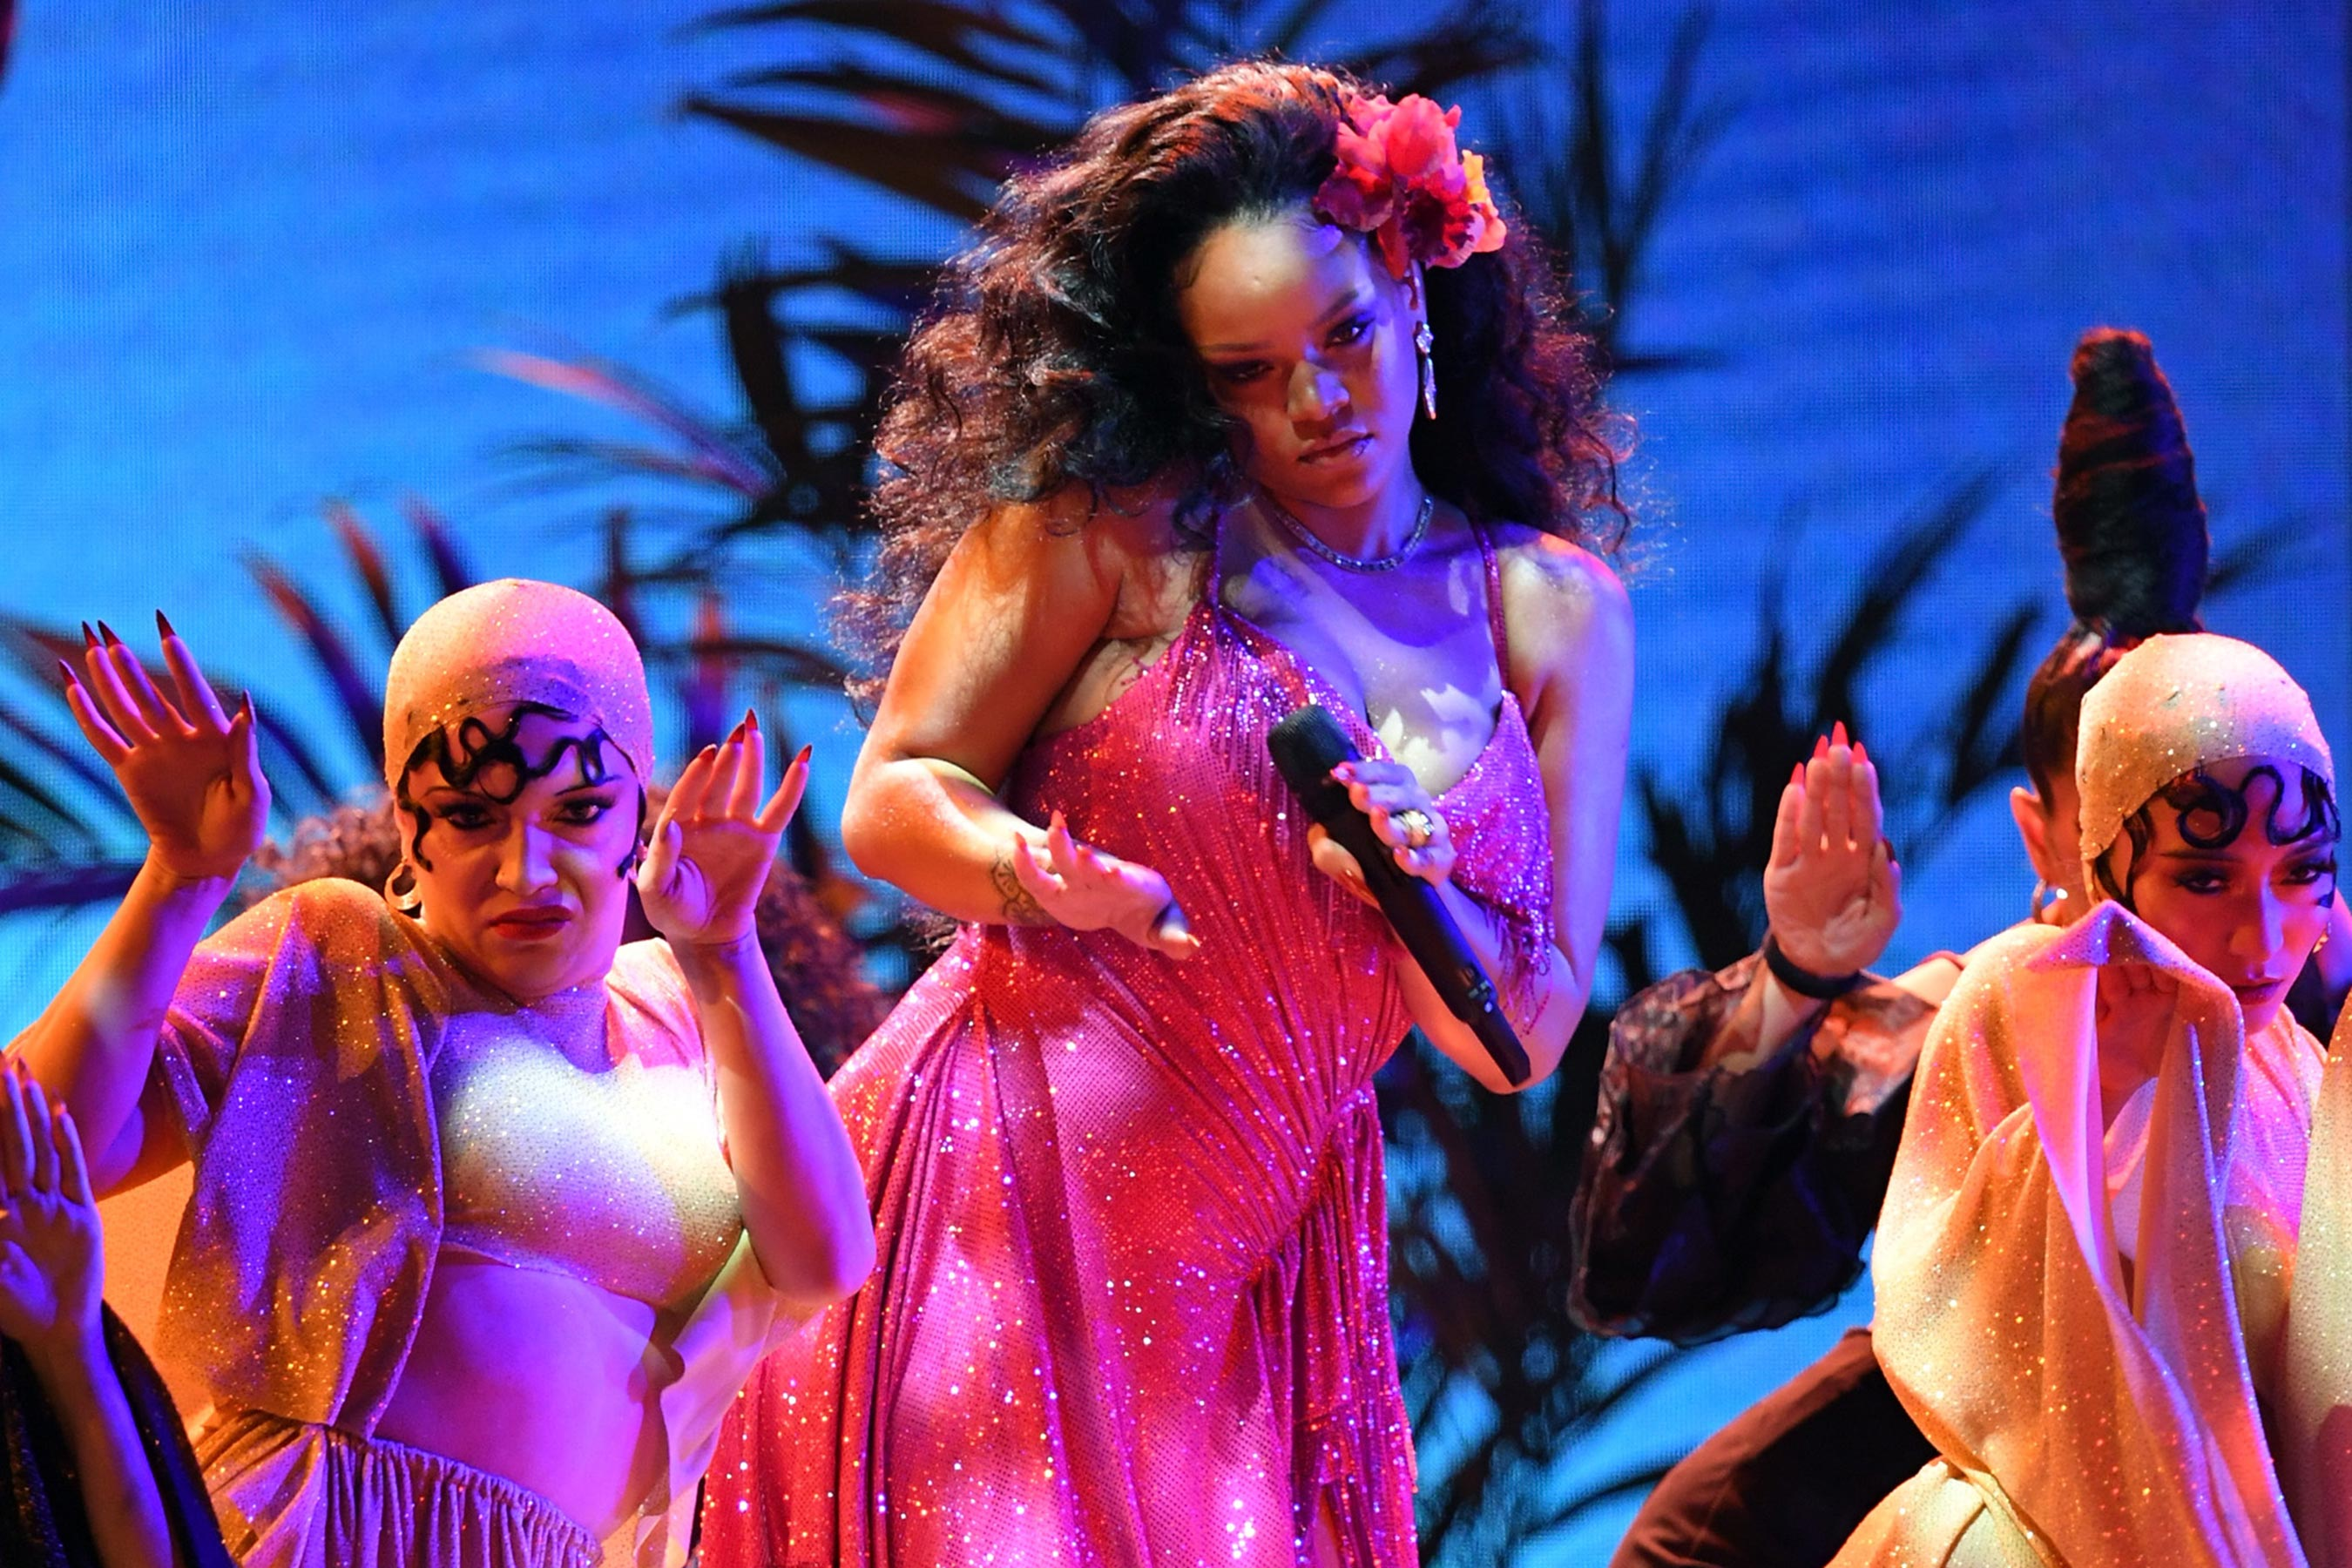 Grammys: Rihanna shows off moves in Wild Thoughts performance